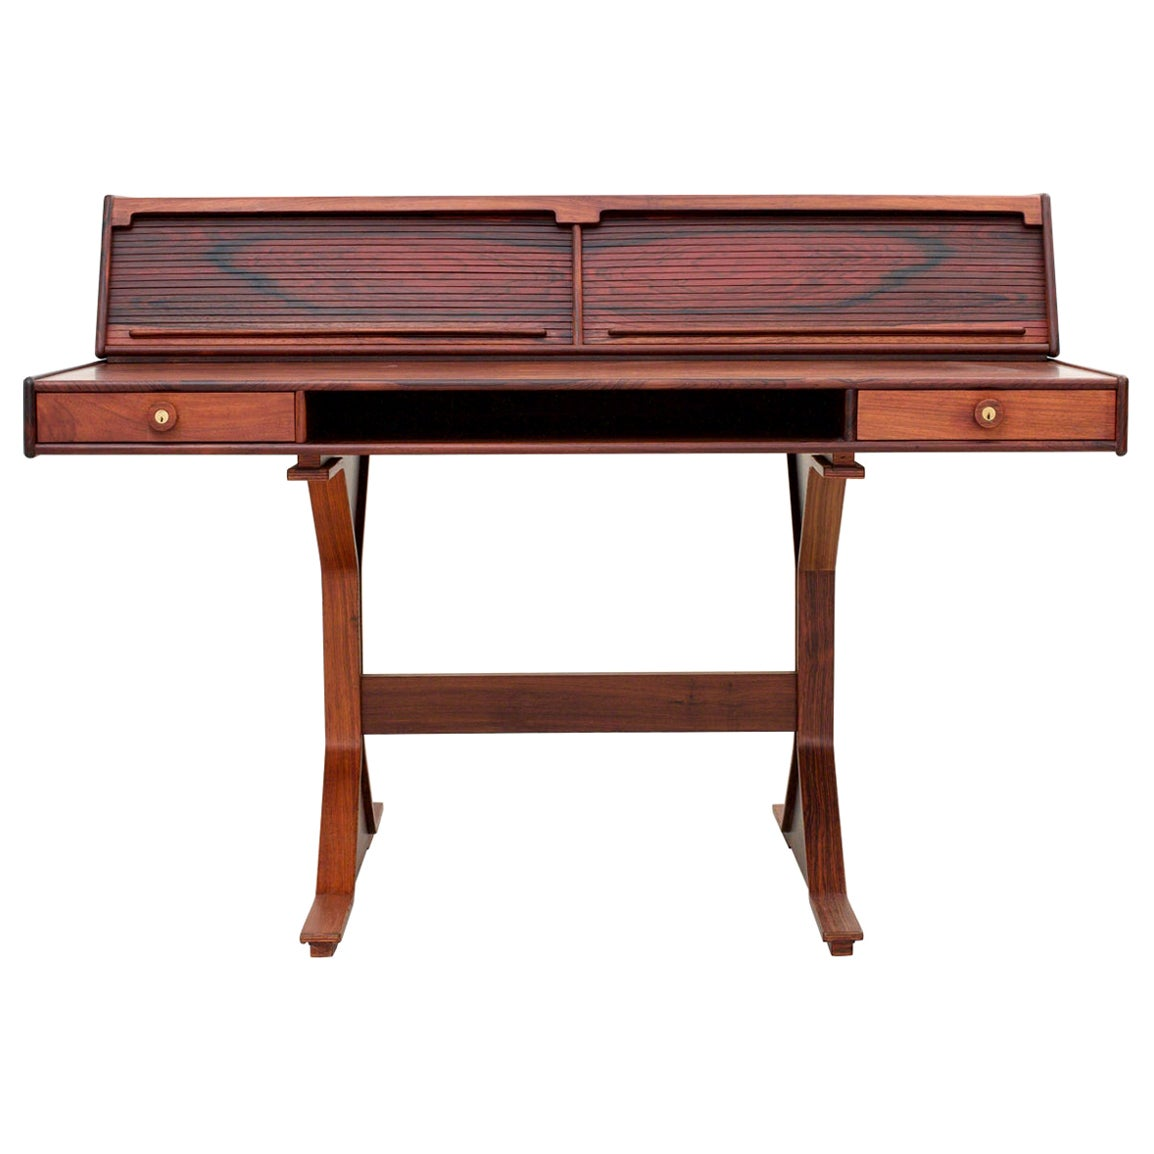 Rosewood Writing Desk by Gianfranco Frattini for Bernini, Italy, 1956